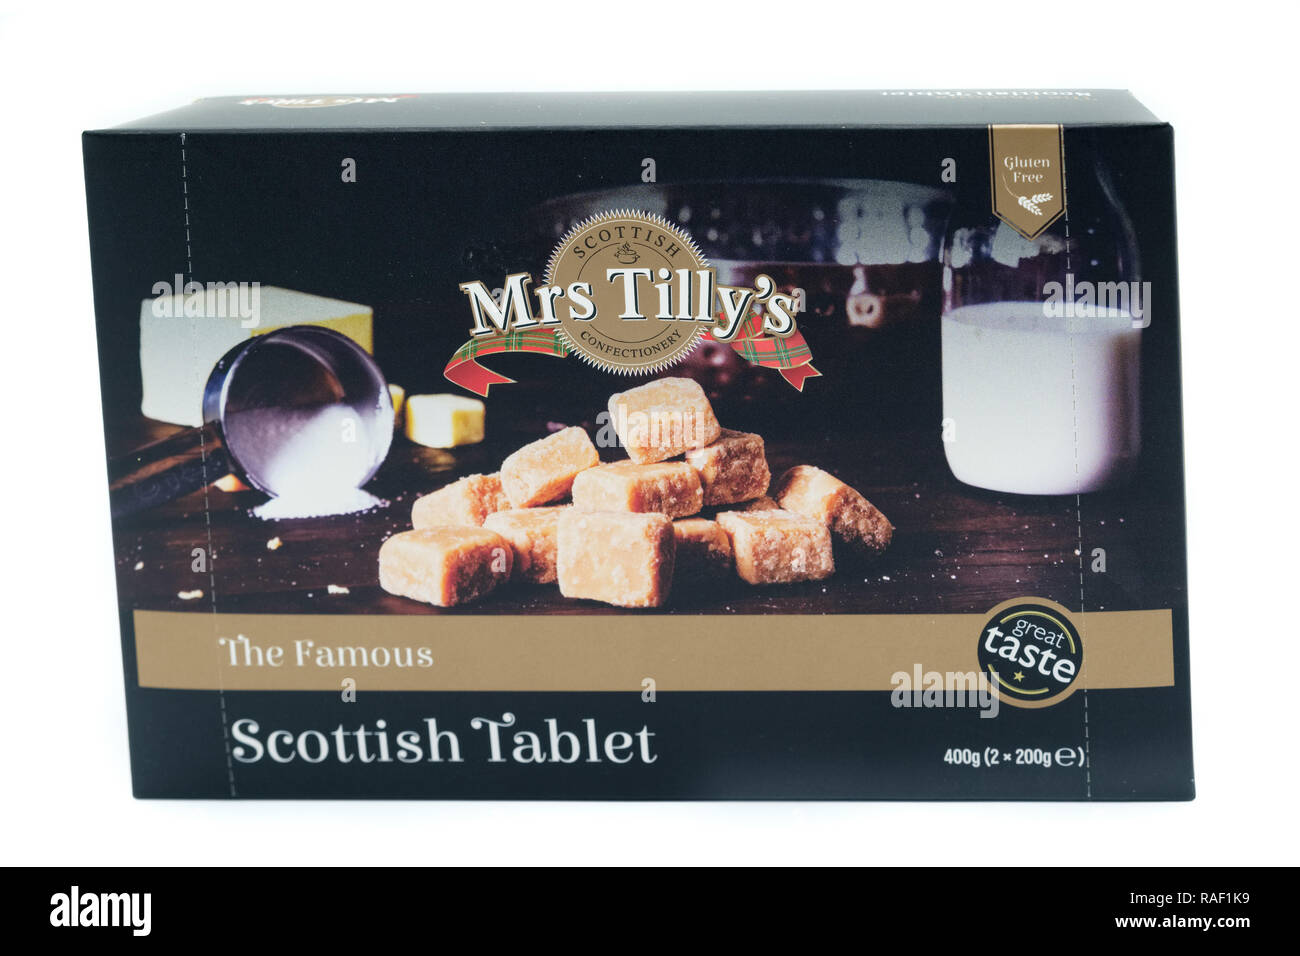 Largs, Scotland, UK - January 02, 2018: Mrs Tilly's branded box of tablet in recyclable packaging in line with current UK guidelines and initiatives. - Stock Image